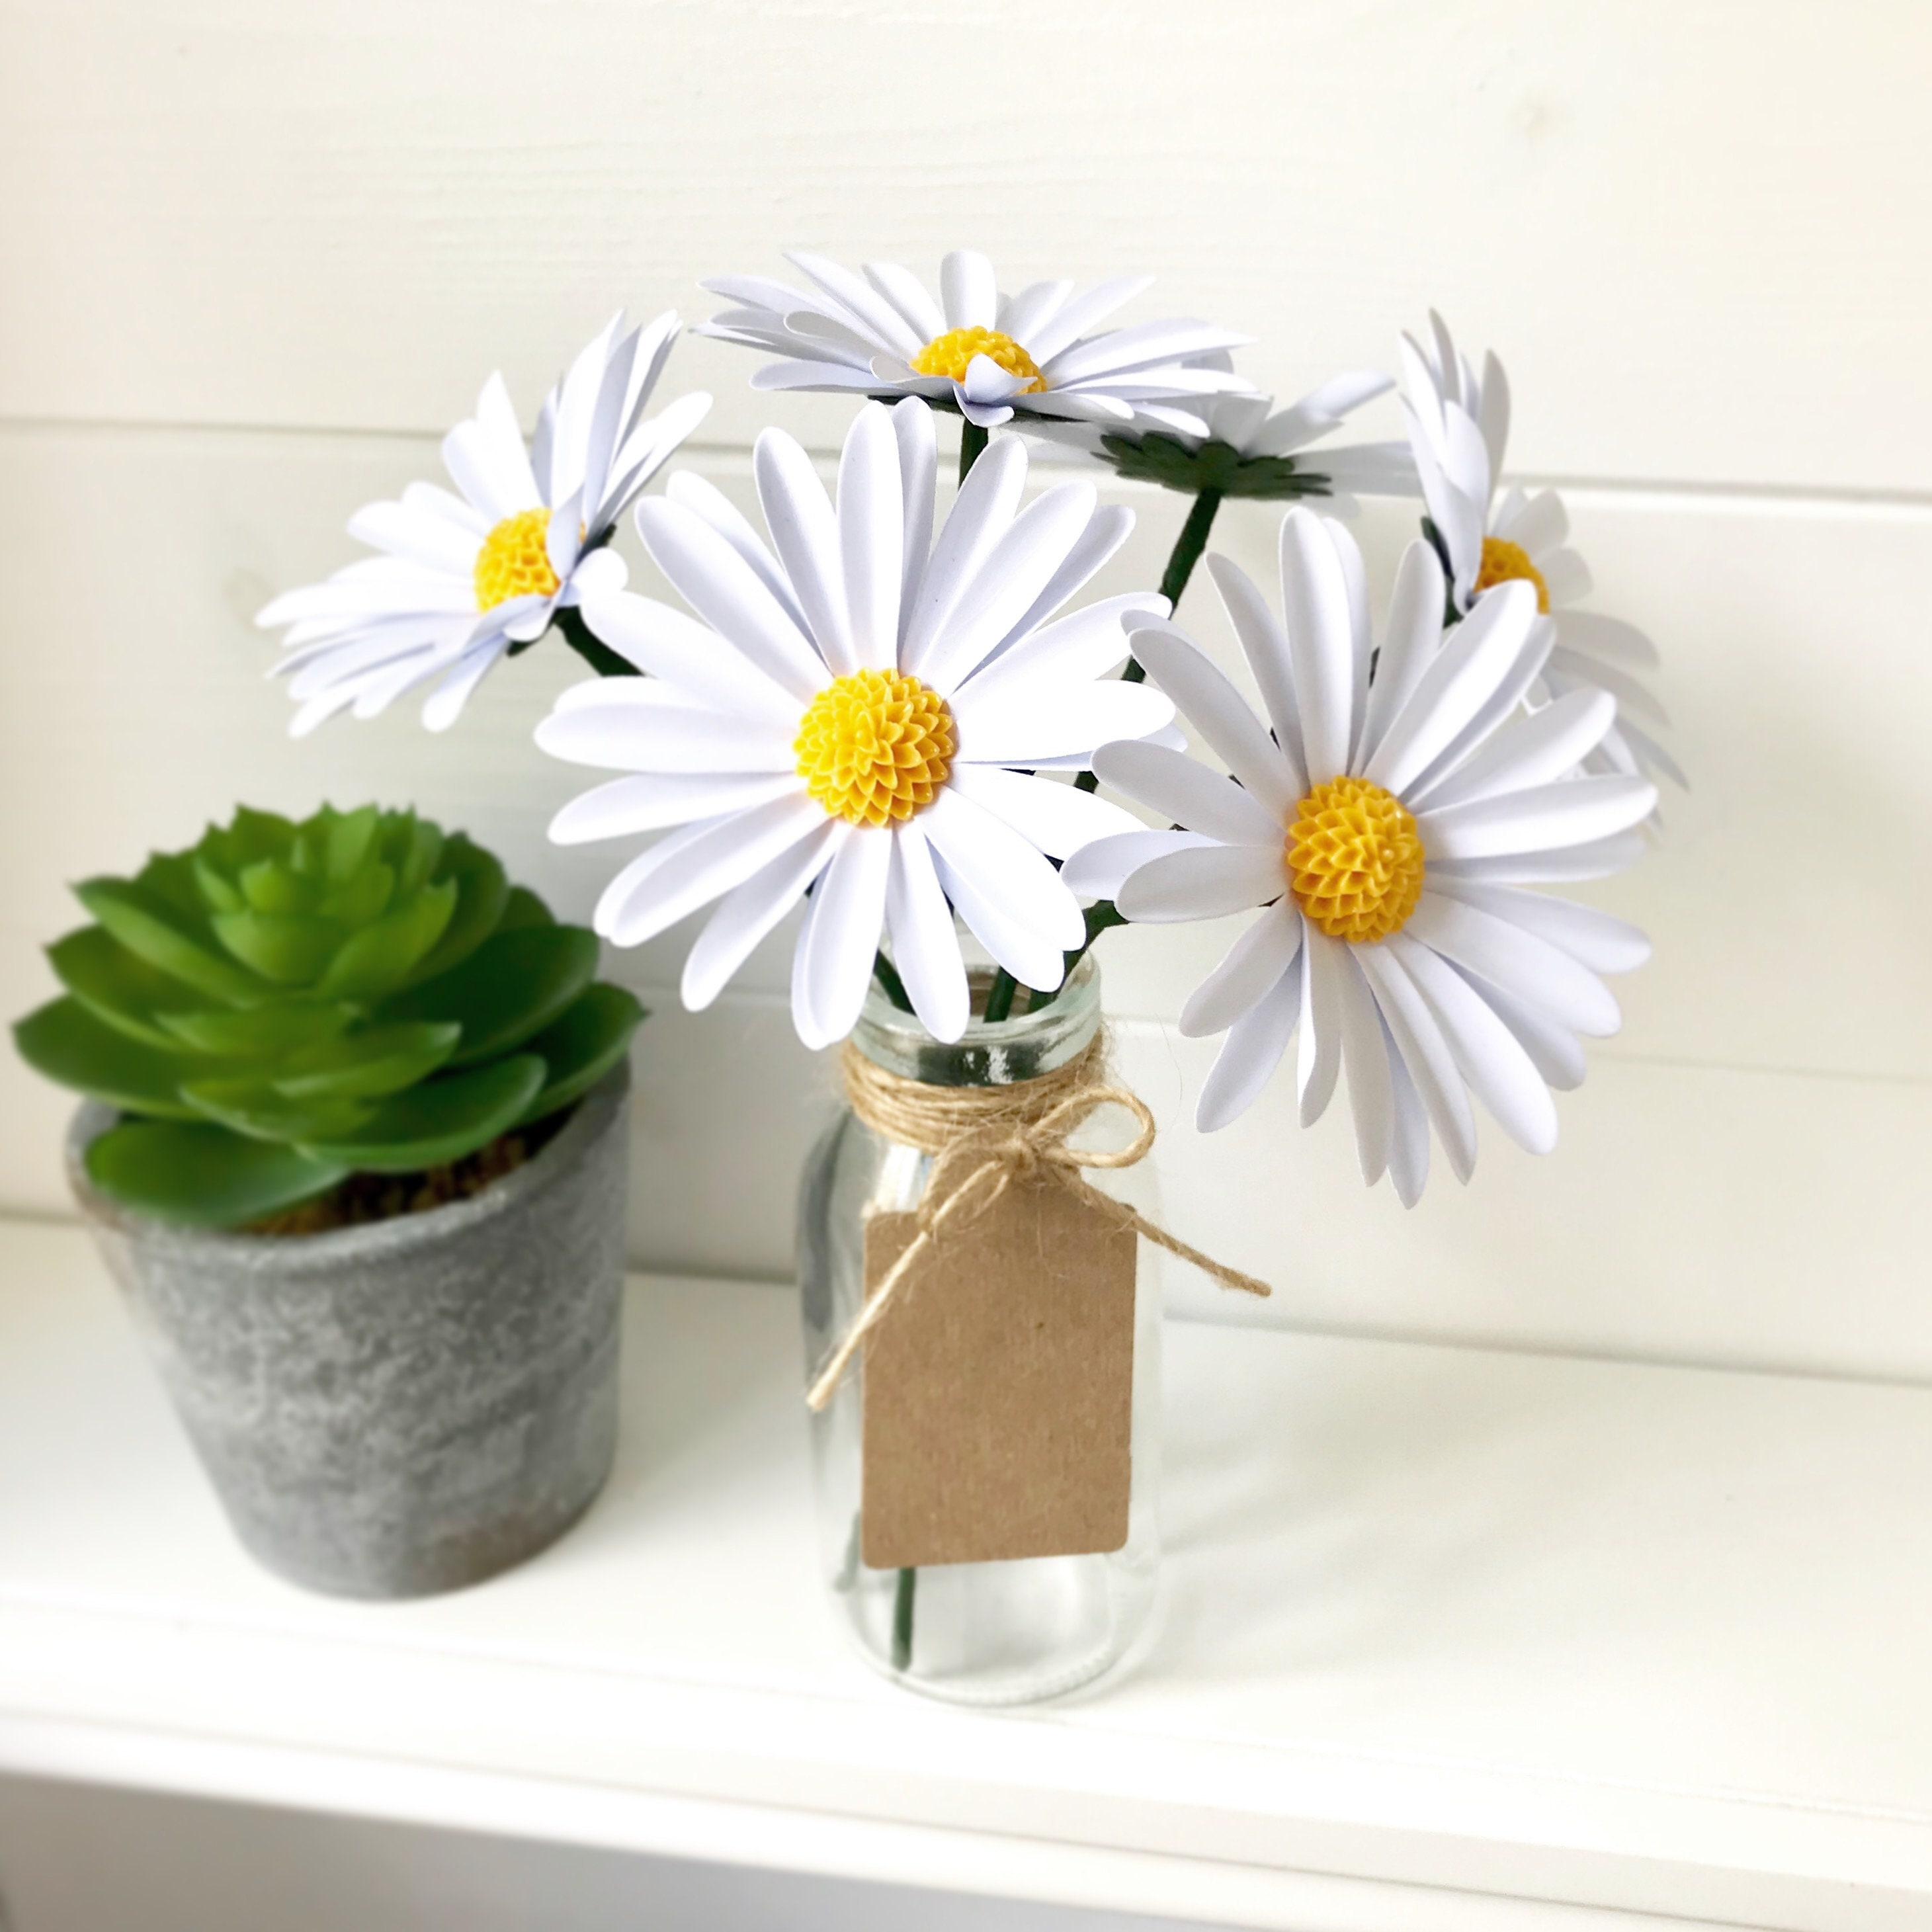 Paper daises 6 x white daisy paper flowers in bottle with etsy zoom izmirmasajfo